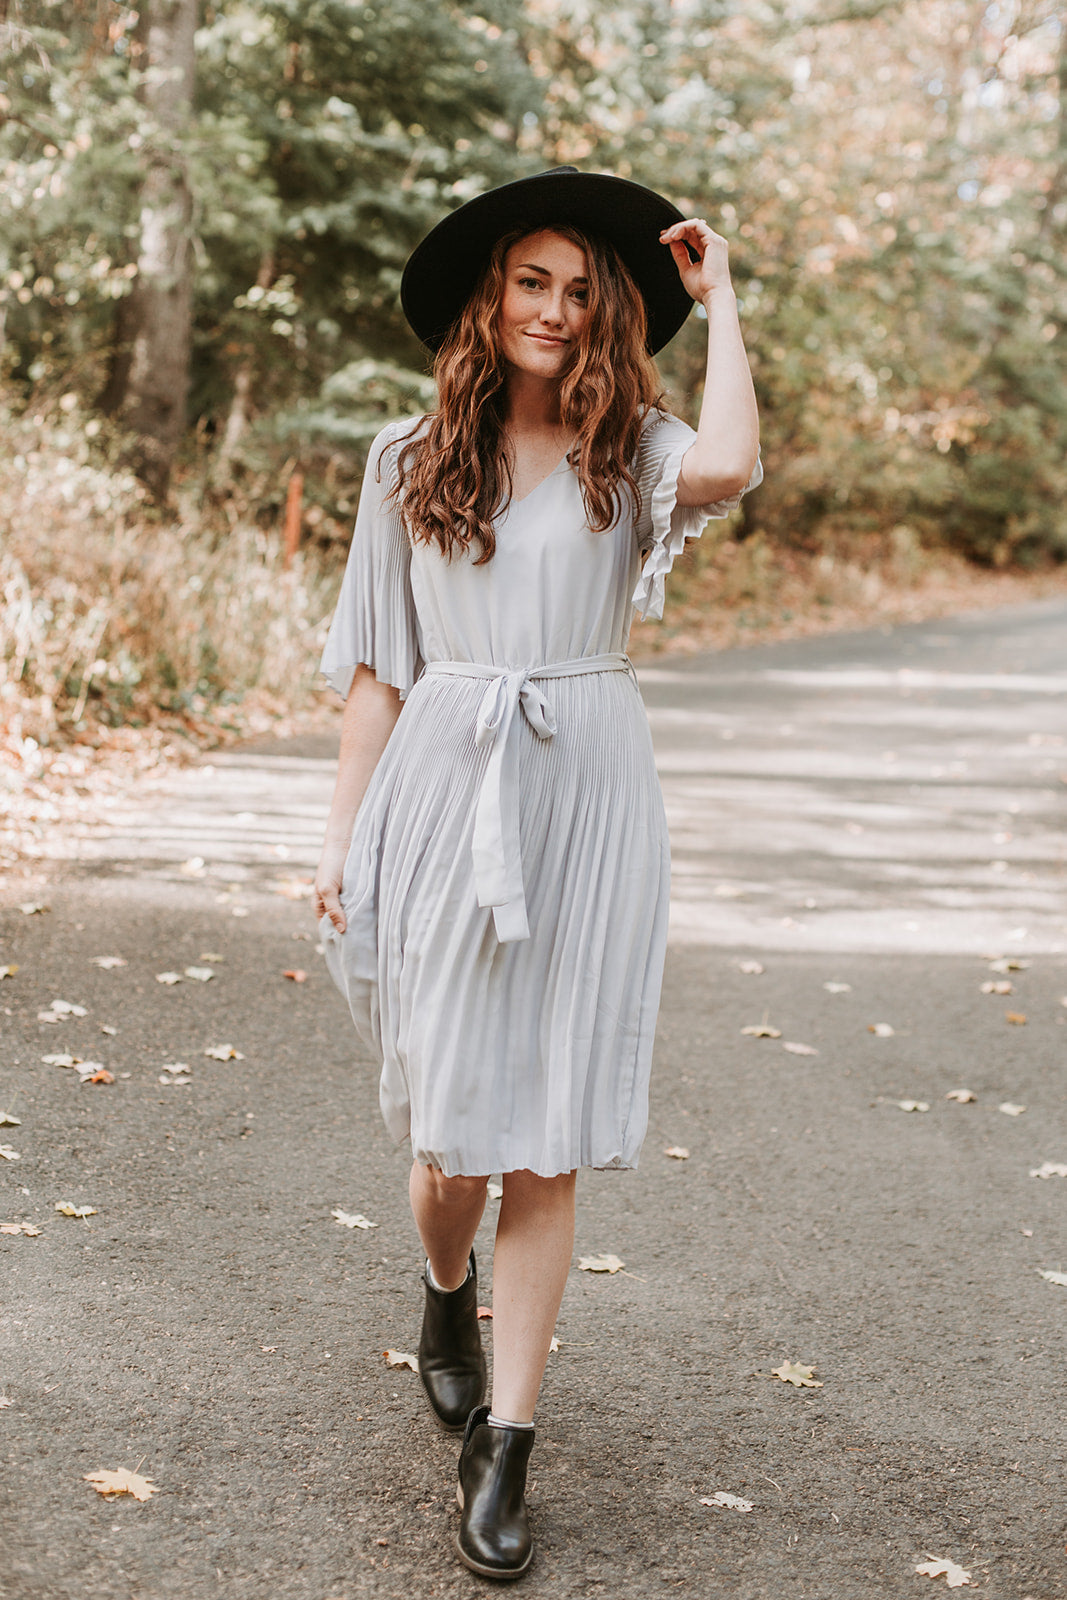 The Palisade Pleated Dress in Light Grey